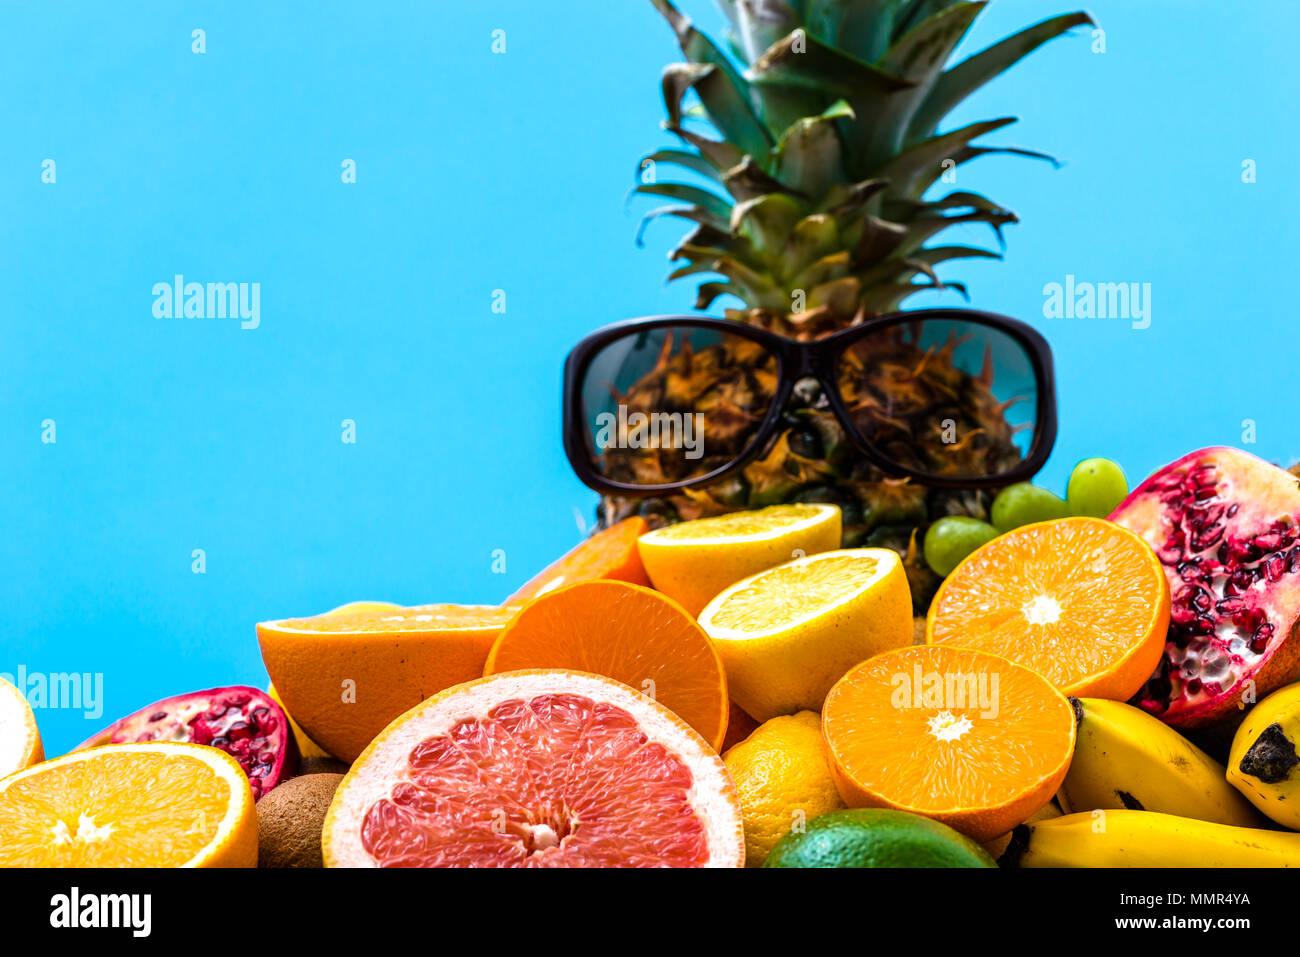 fresh fruit tropical juicy fruits pile of oranges pineapple and